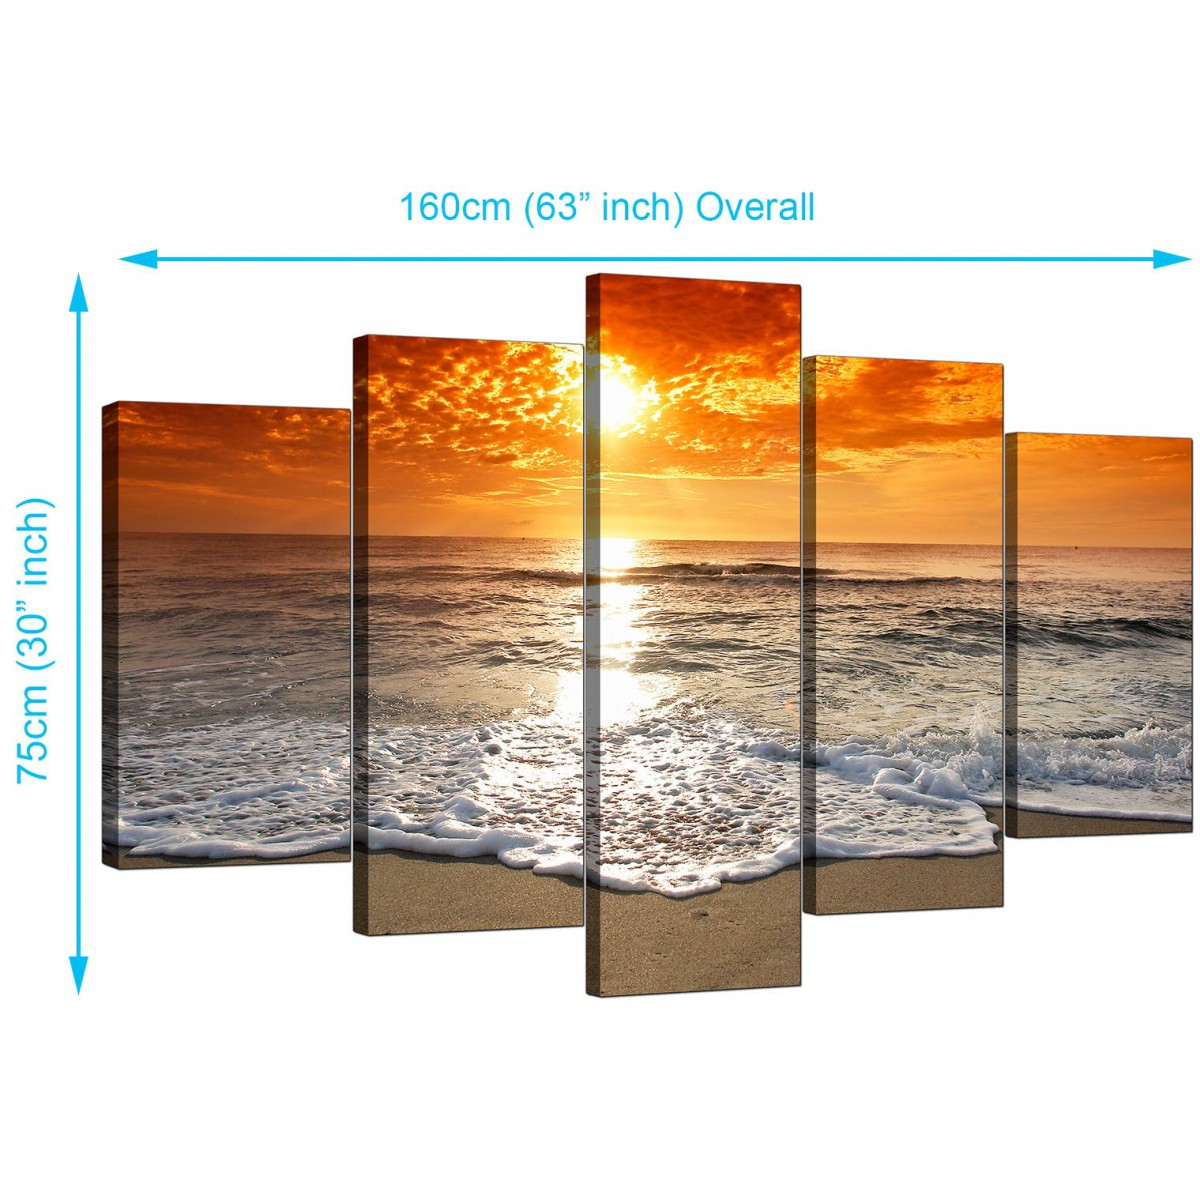 Large Framed Wall Art New York City Landscape Sunset: Beach Sunset Canvas Prints For Your Living Room